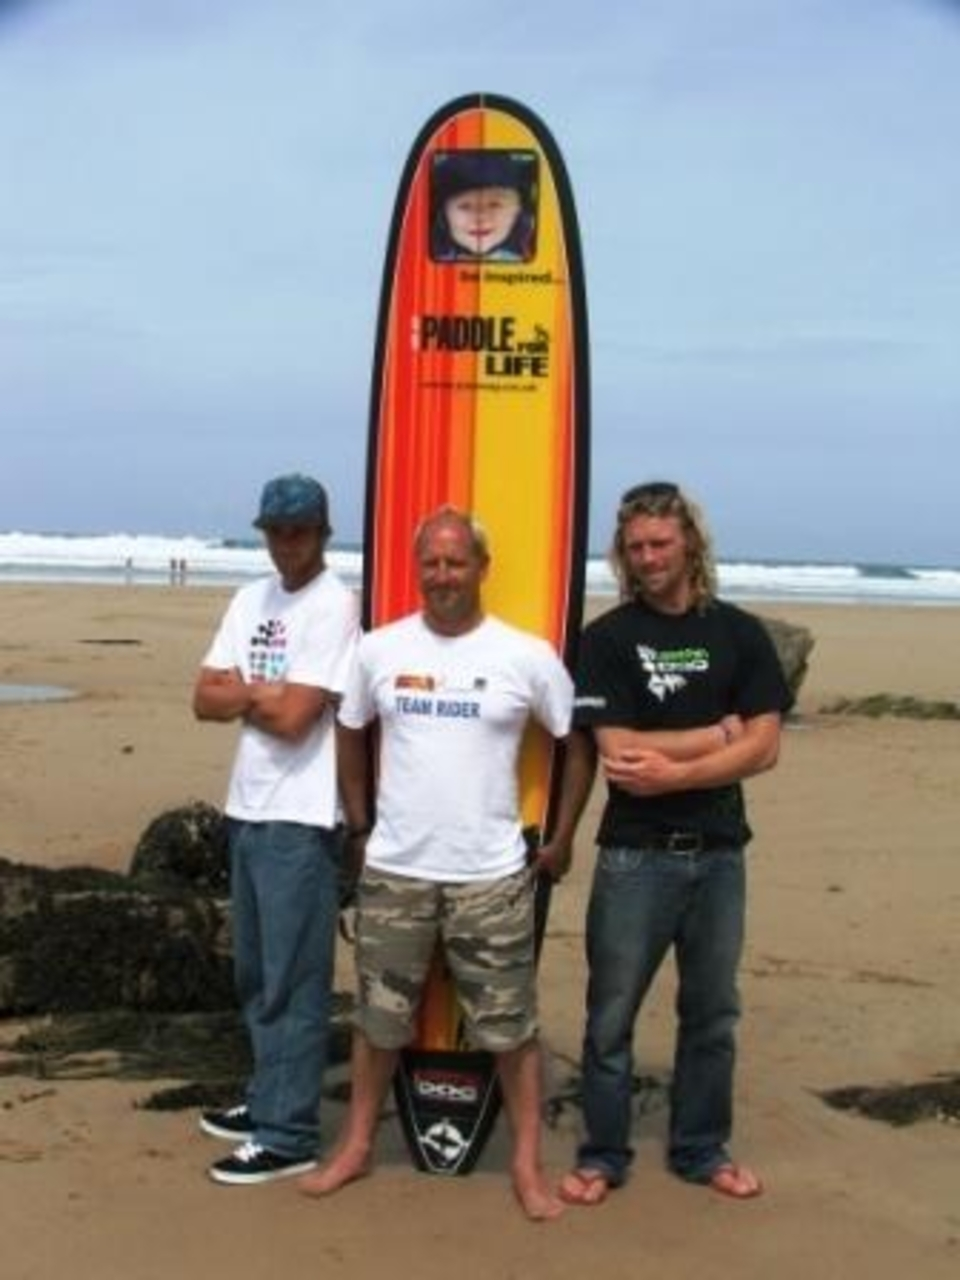 Oli Adams, Ben Skinner with Matt Way Joe's Dad supporting the Paddle